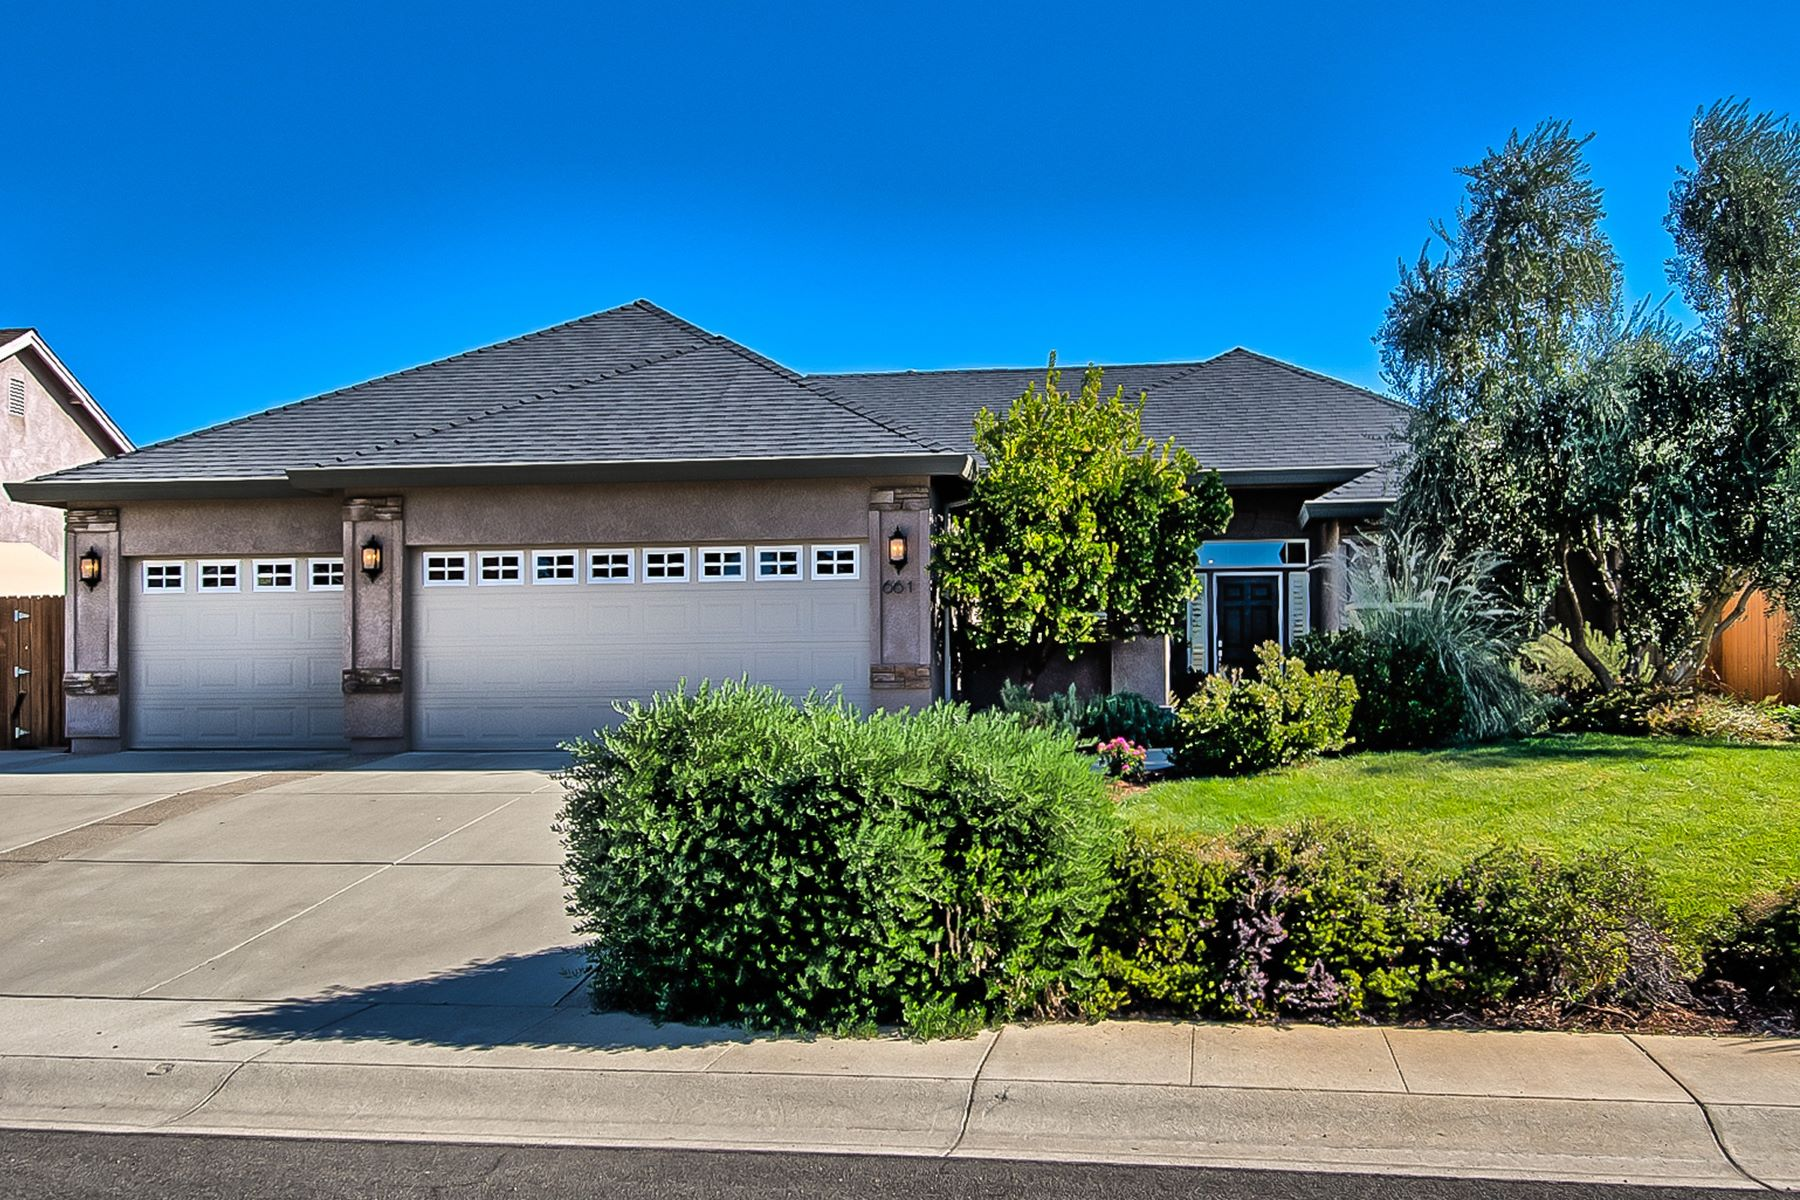 Single Family Homes for Sale at The Best of Indoor/Outdoor Living 661 San Gabriel Street Redding, California 96003 United States